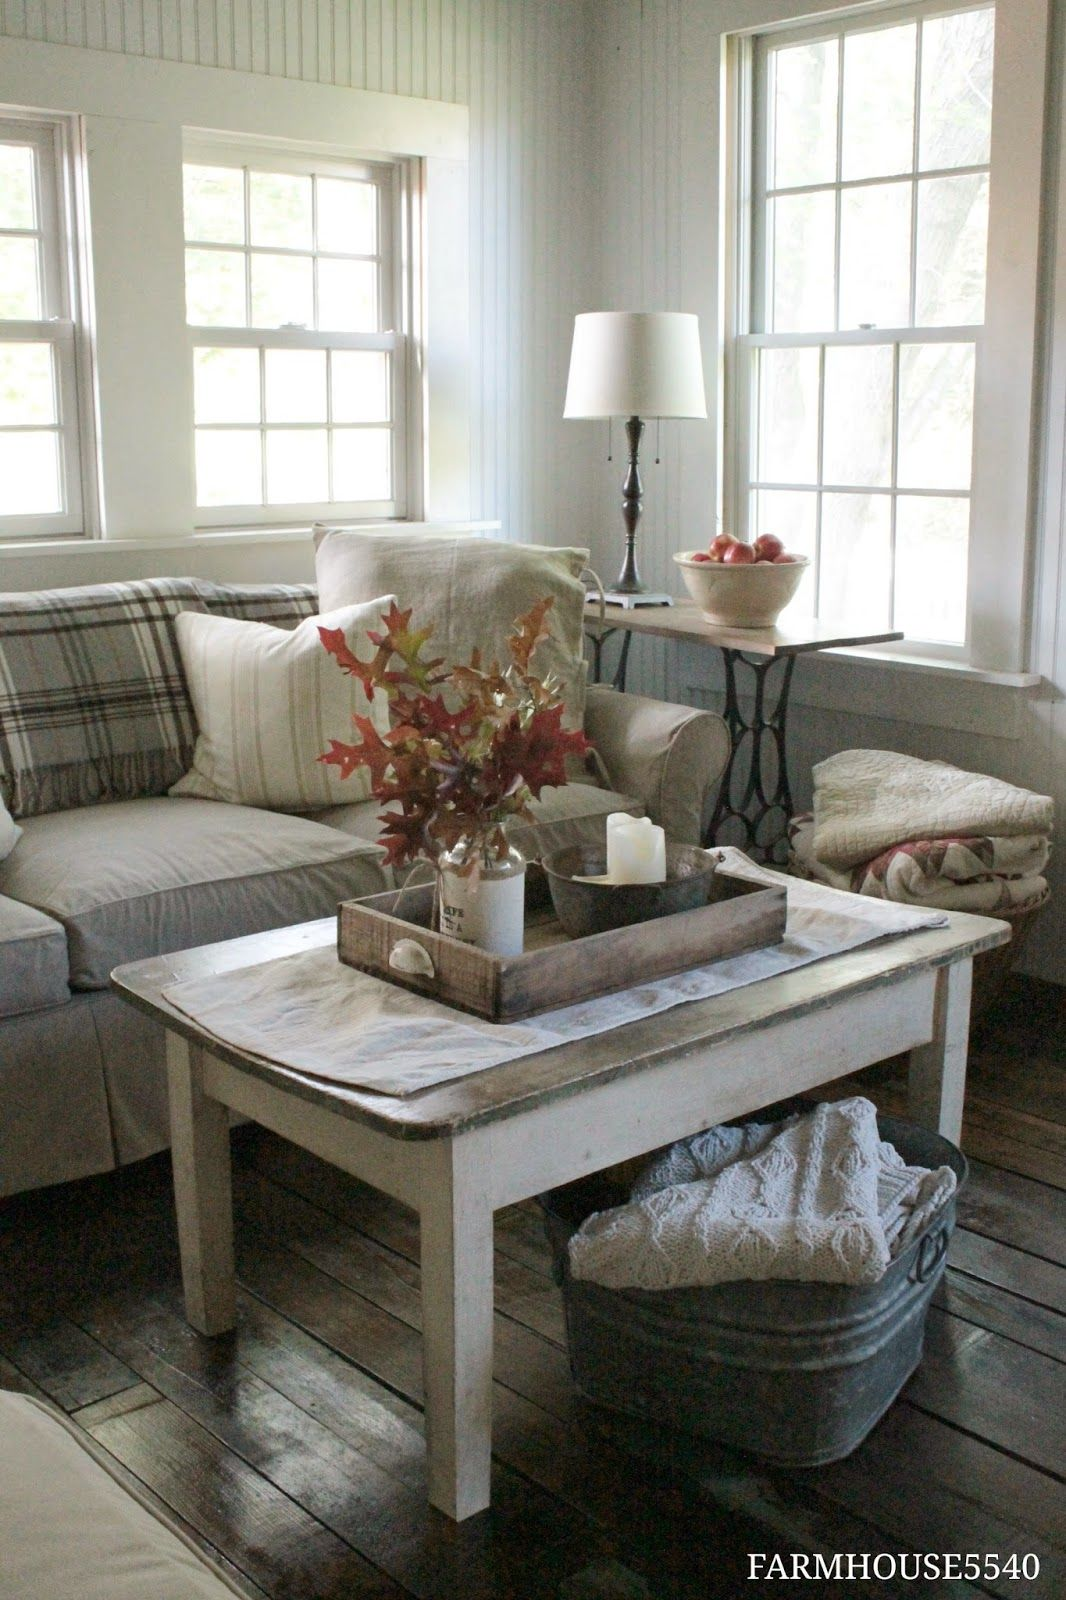 Farmhouse Addition Home Design Ideas Pictures Remodel And Decor: Farm House Living Room, Living Room Decor Rustic